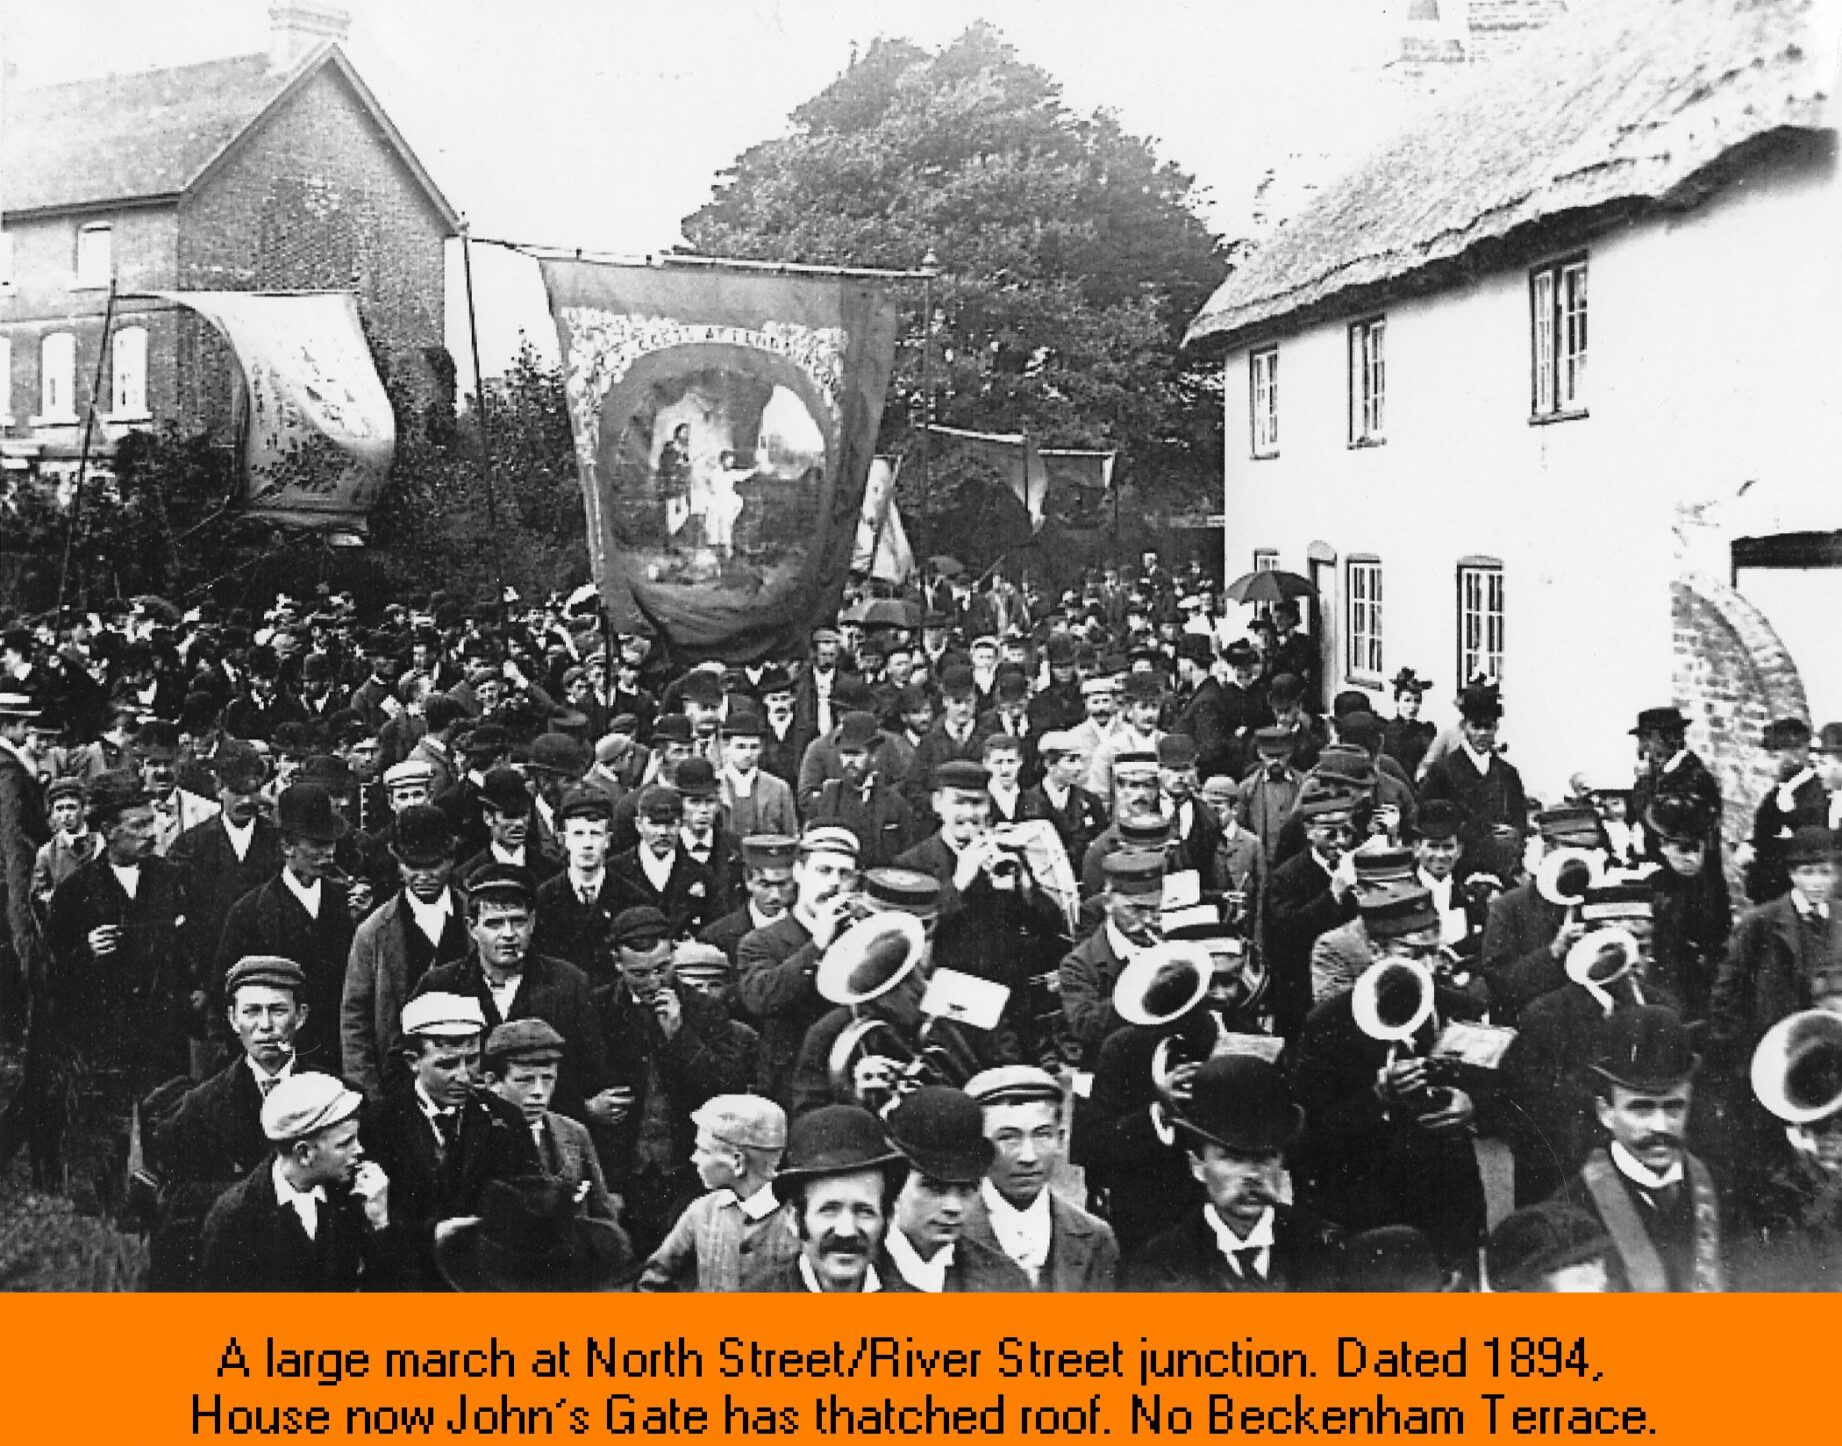 WESTBOURNE HISTORY PHOTO, CARNIVAL, FETE, MARCH, PARADE